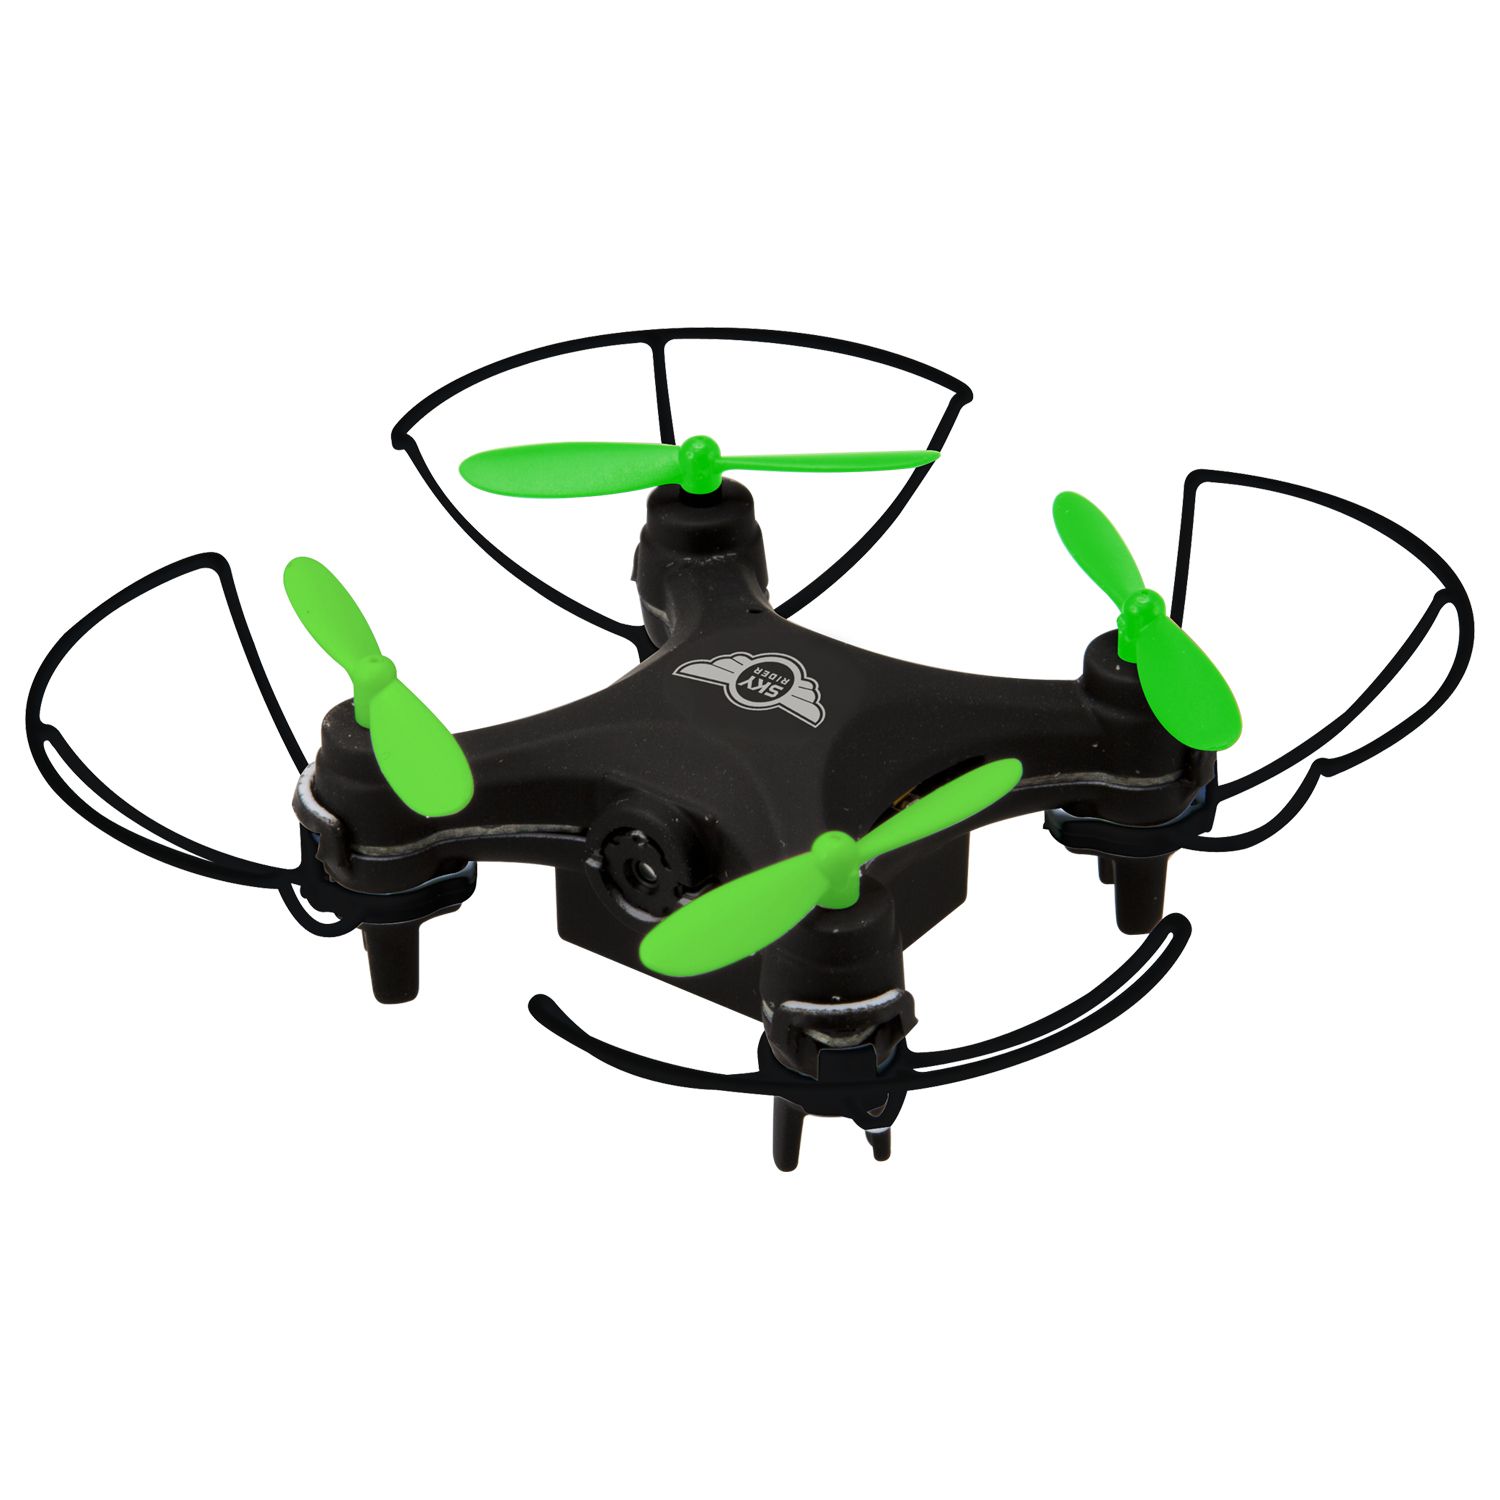 Sky Rider Mini Glow Pro Quadcopter Drone with Wi-Fi Camera, DRW417B by Sky Rider